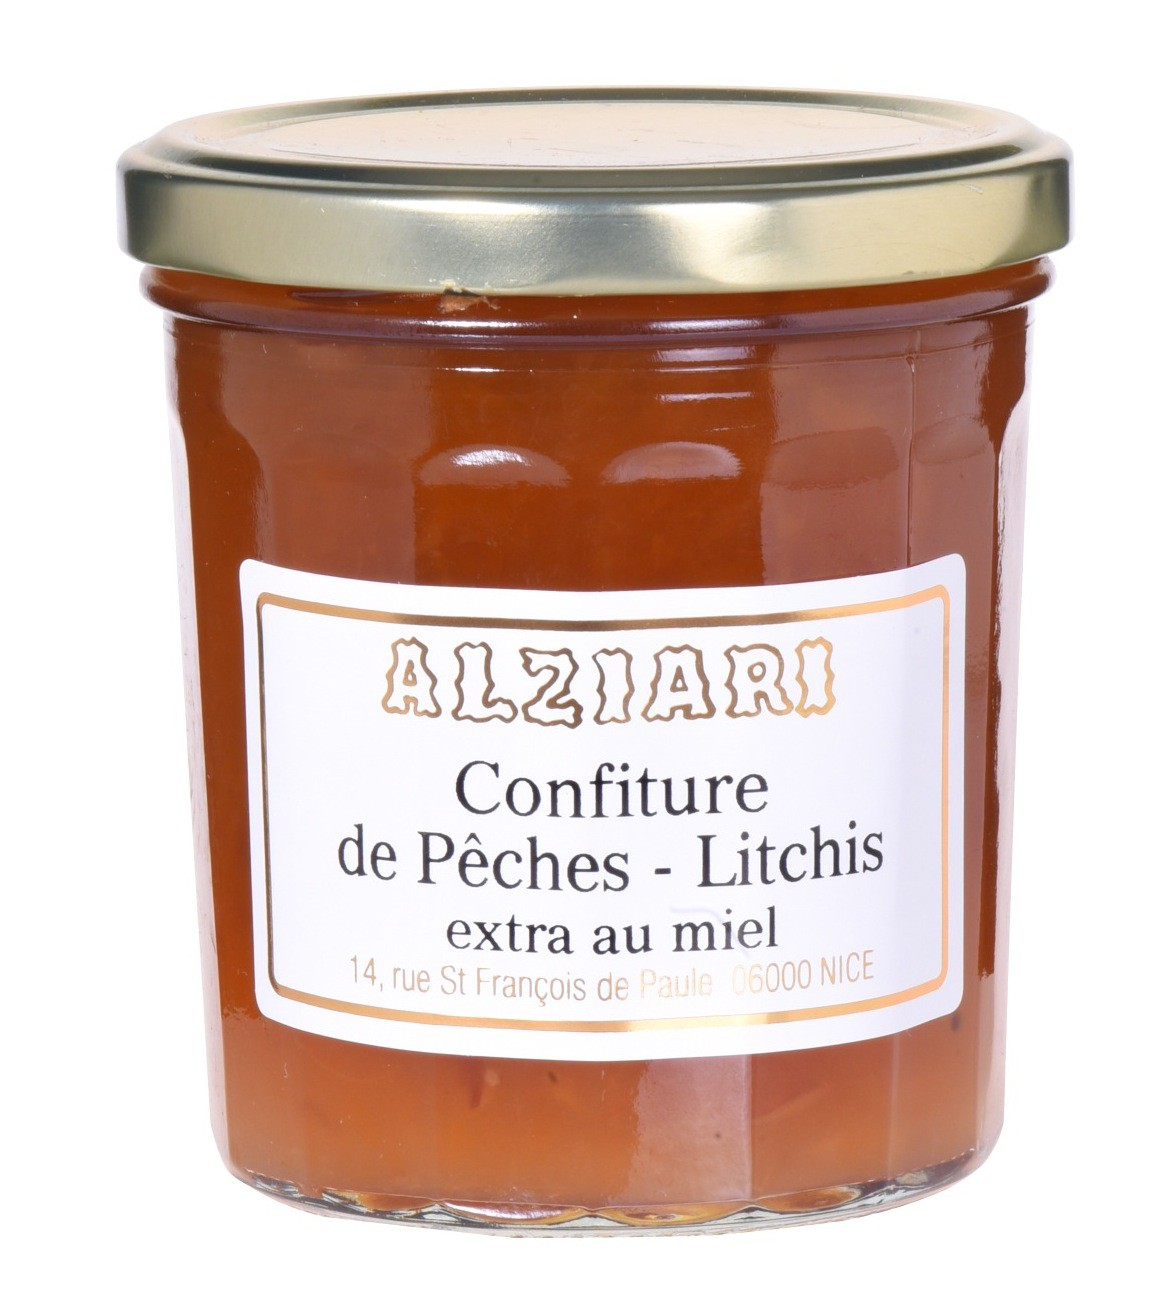 Confiture Peches-Litchis 375gr